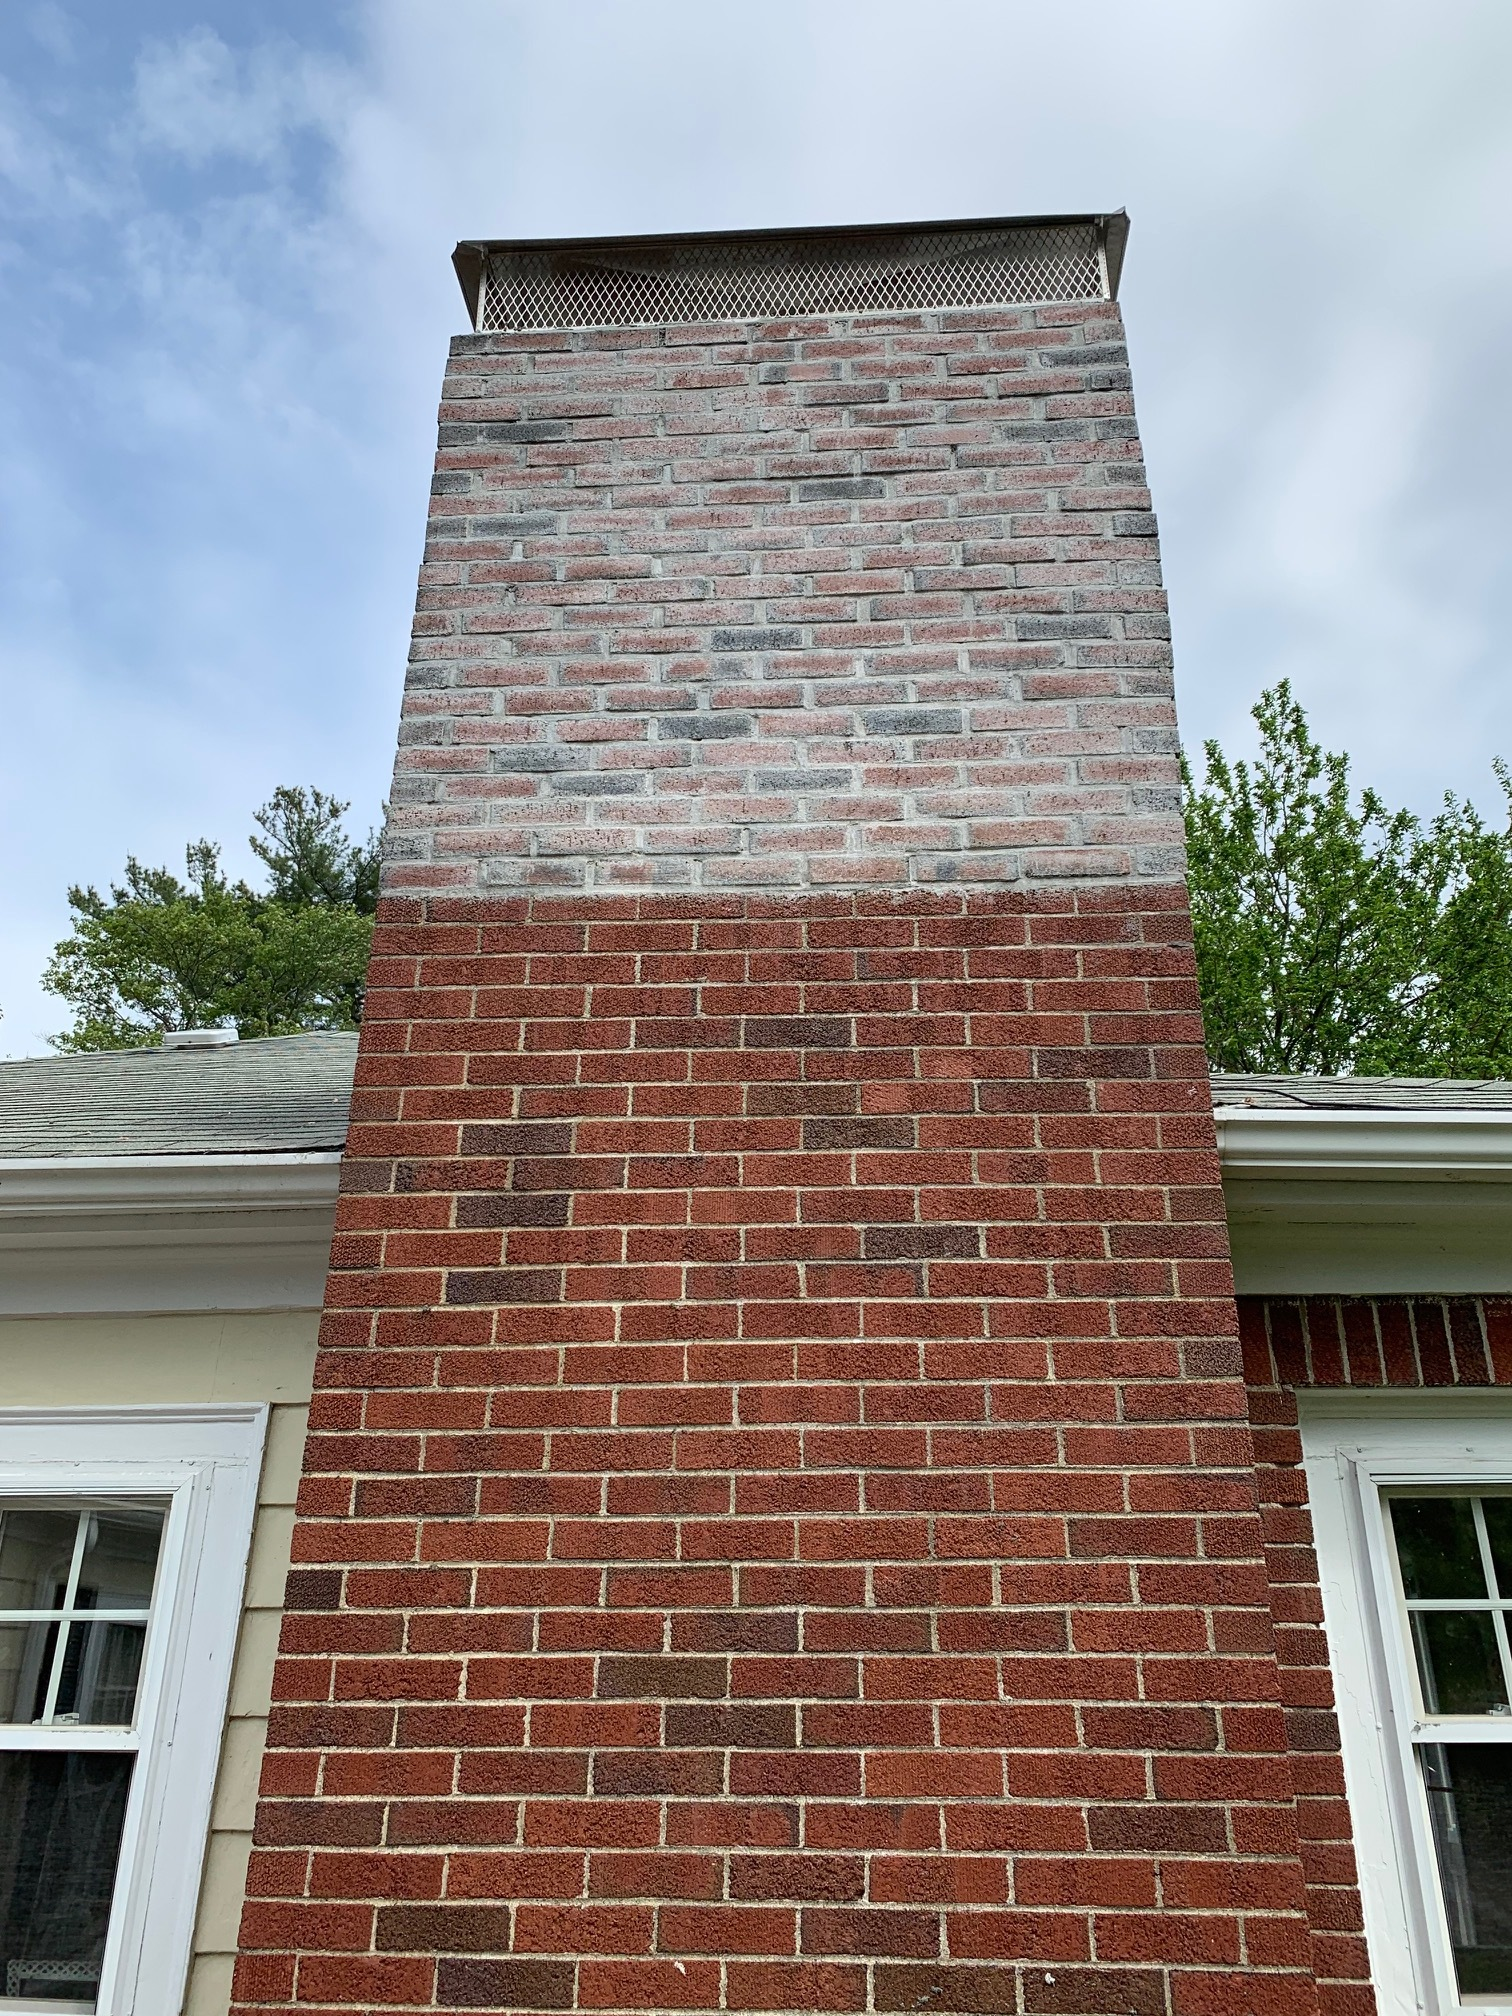 They sealed it with a sealer, locking the film of white in the brick!!! And it's crooked!